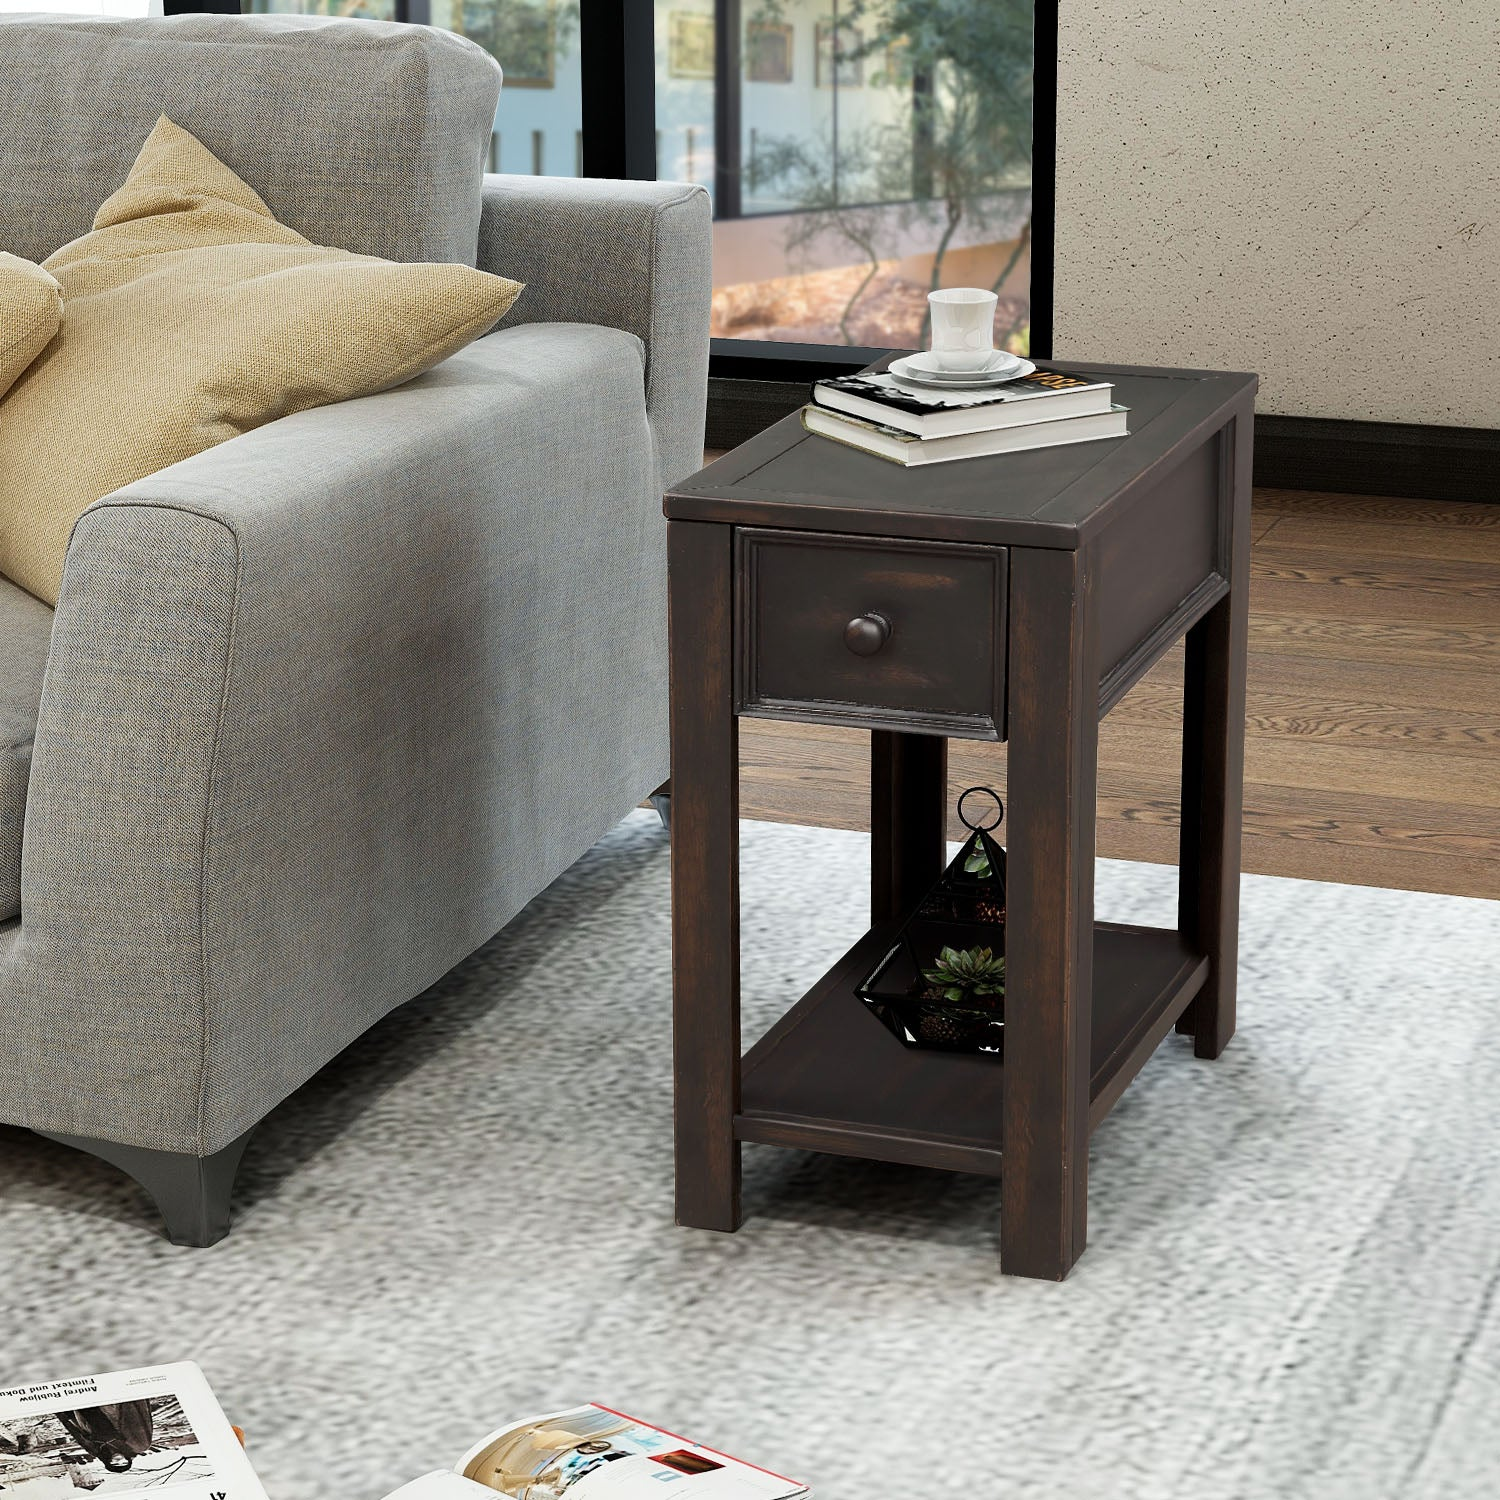 Coffee Table Retro Style Solid Wood+MDF Console Table Sofa Table for Living Room with Open Shelf and Drawer